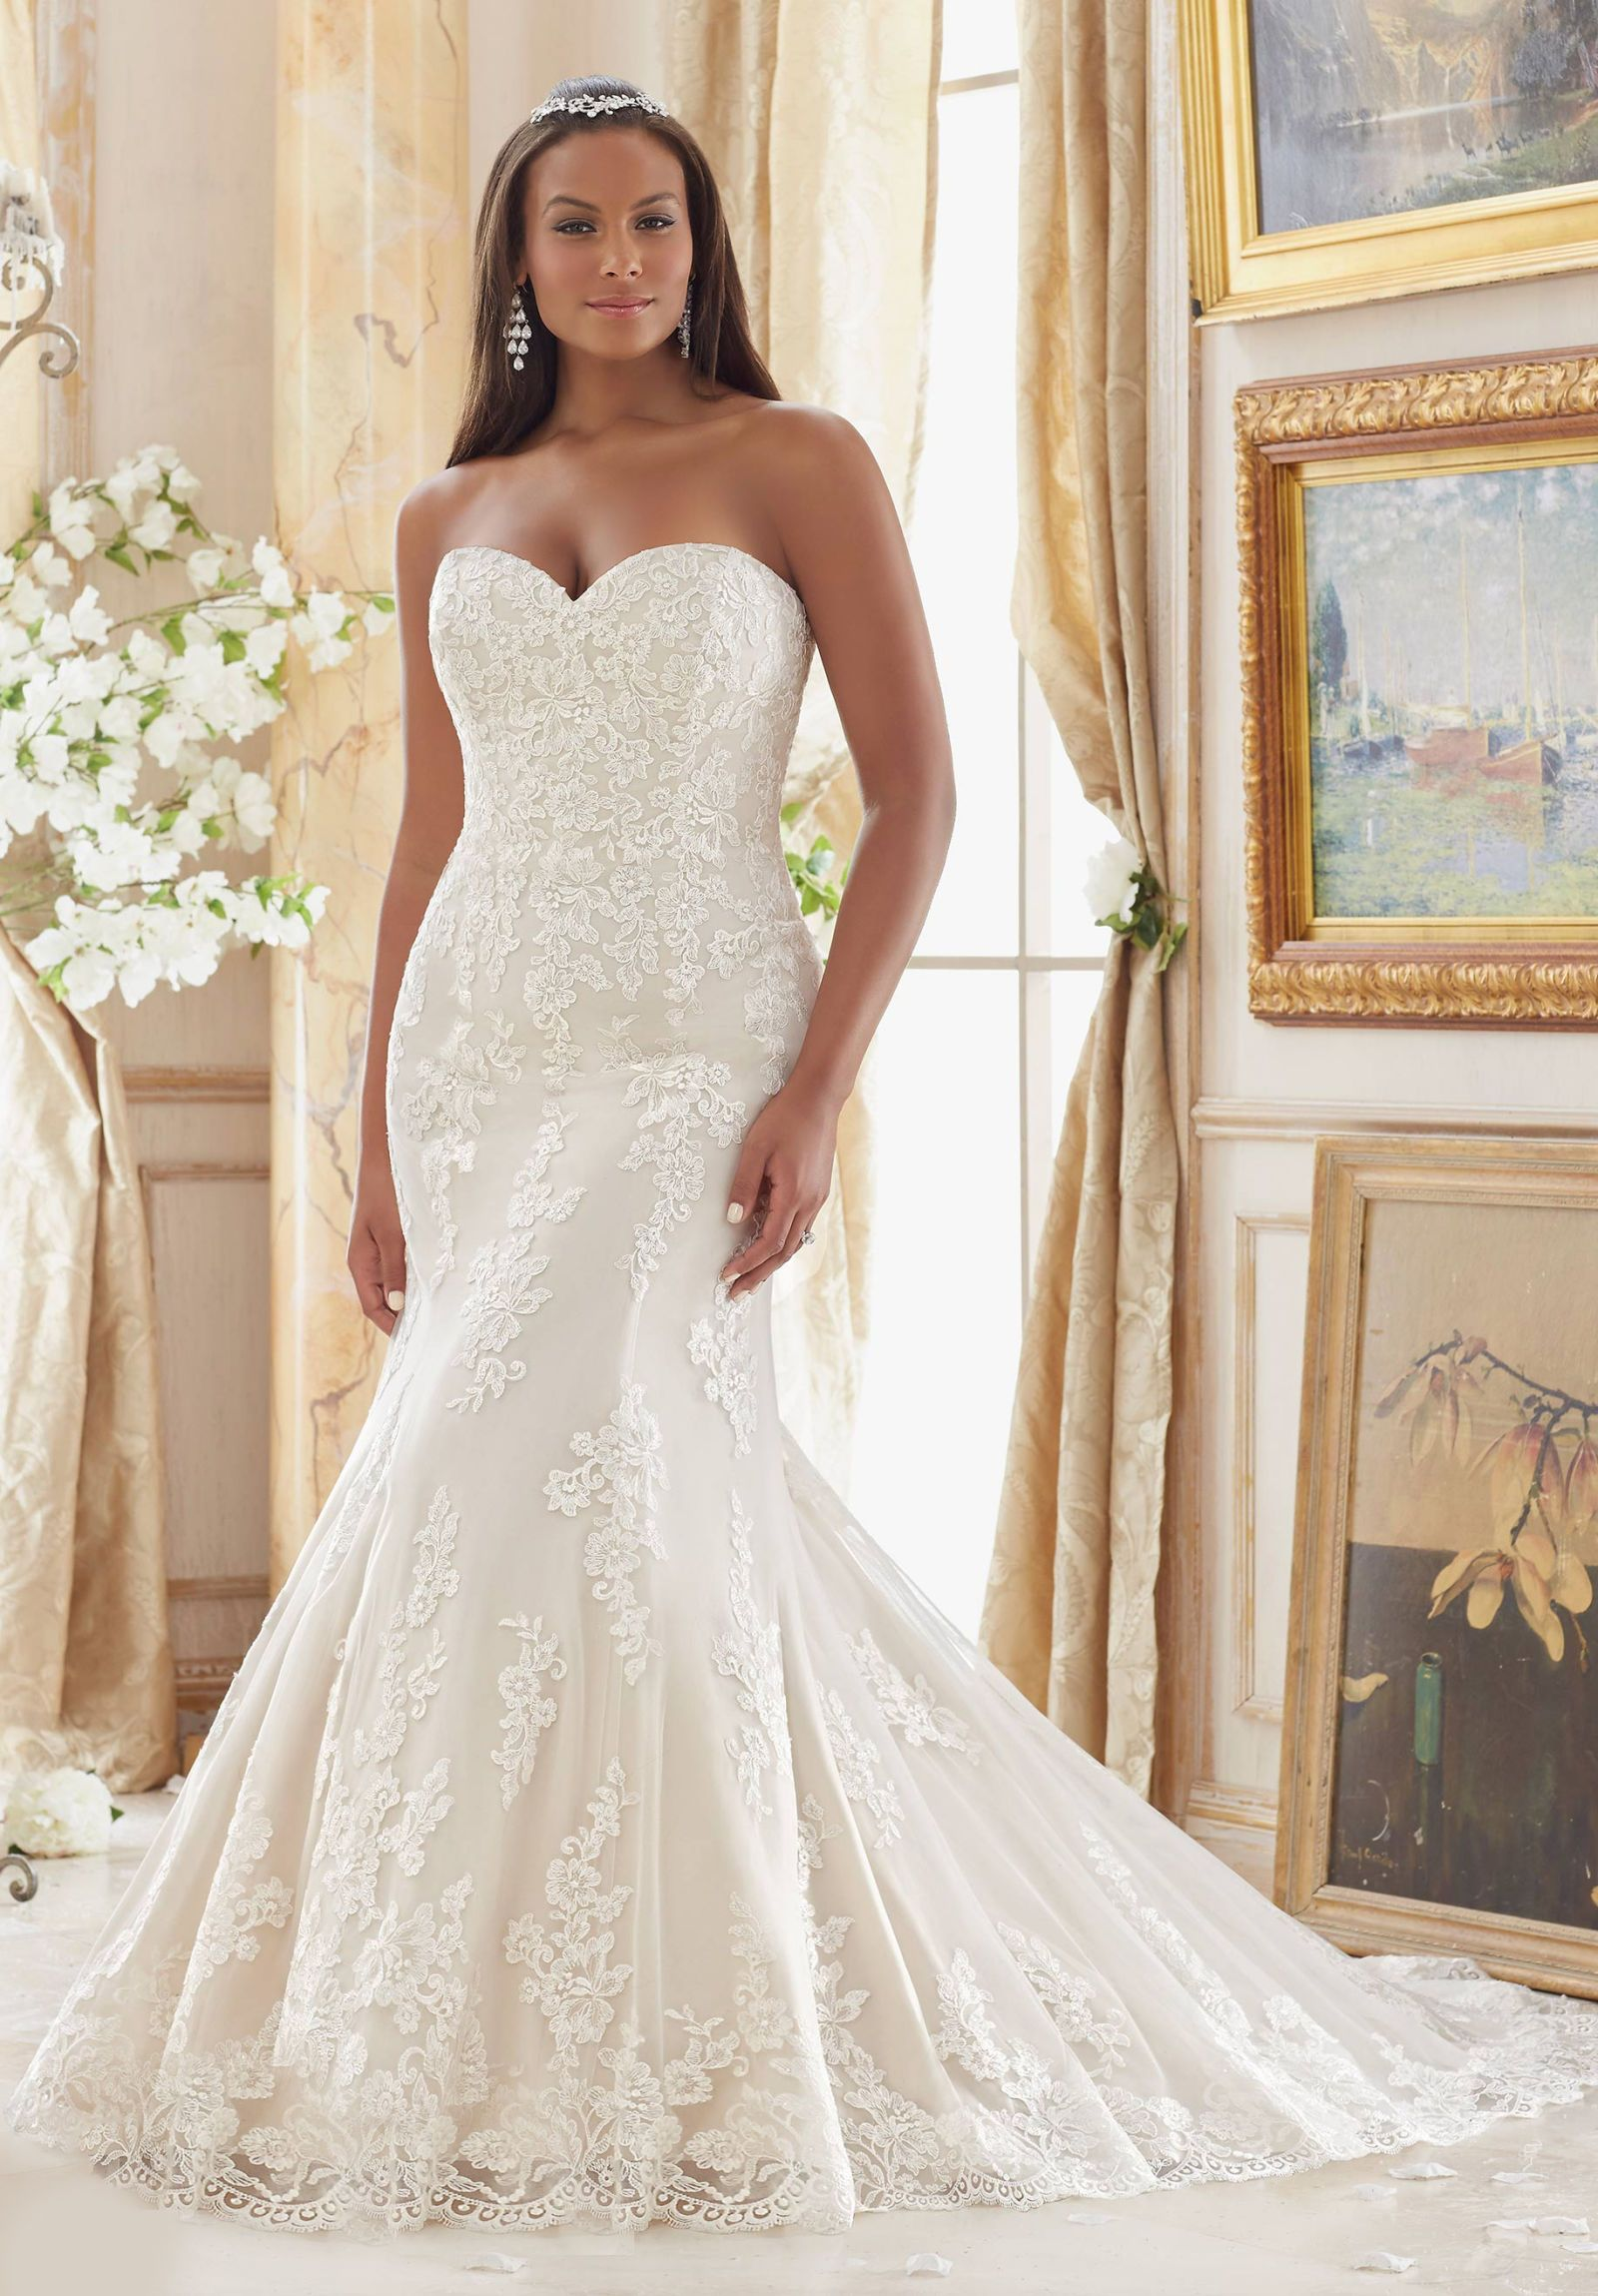 6 Wedding Dress Brands for the Plus Size Bride